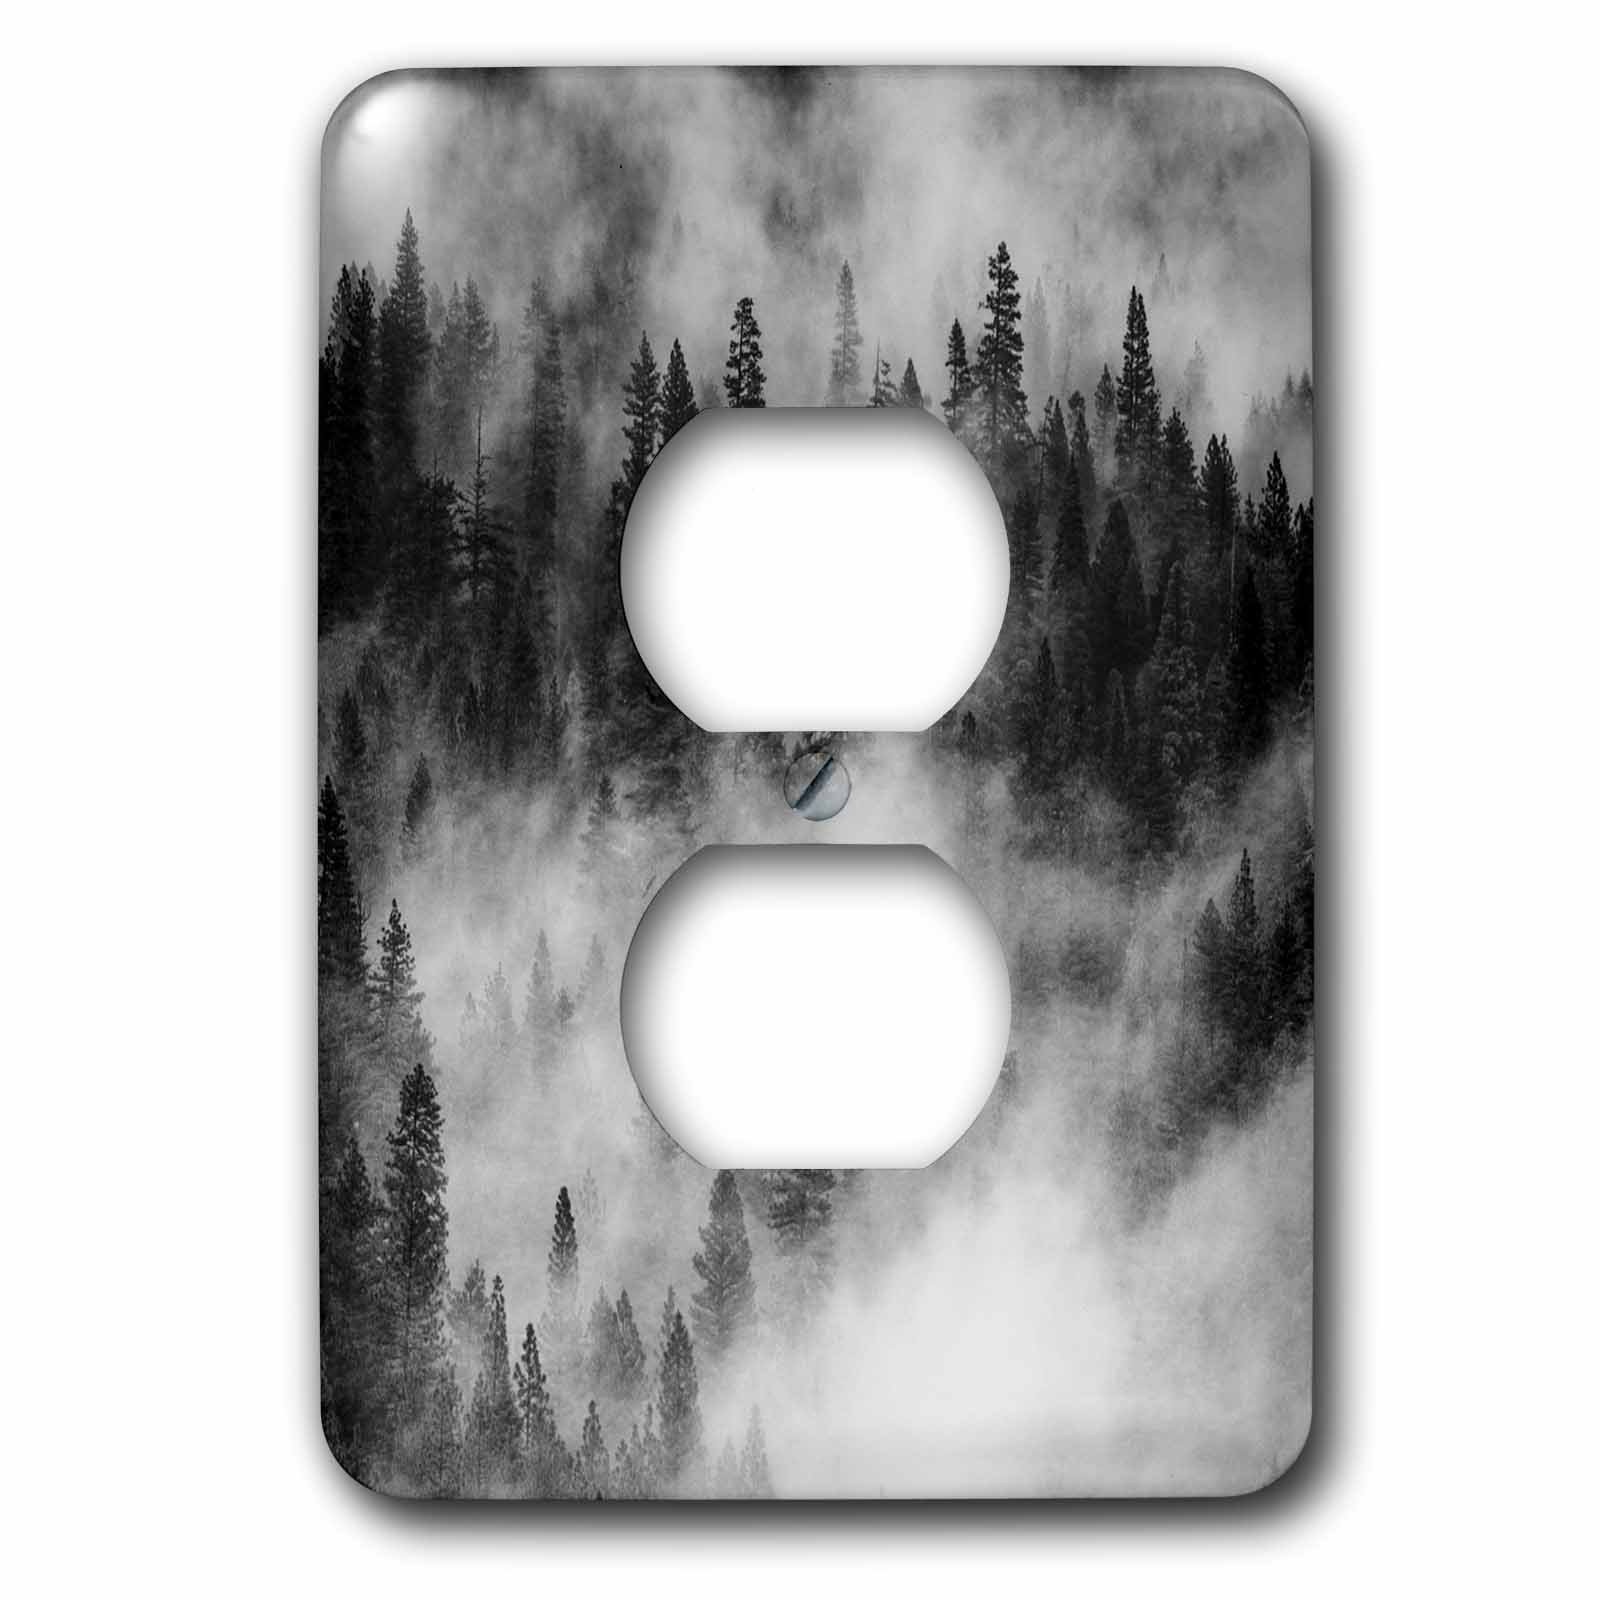 3dRose Danita Delimont - Trees - Usa, California. Yosemite NP. Pine forests with swirling mist - Light Switch Covers - 2 plug outlet cover (lsp_258928_6)